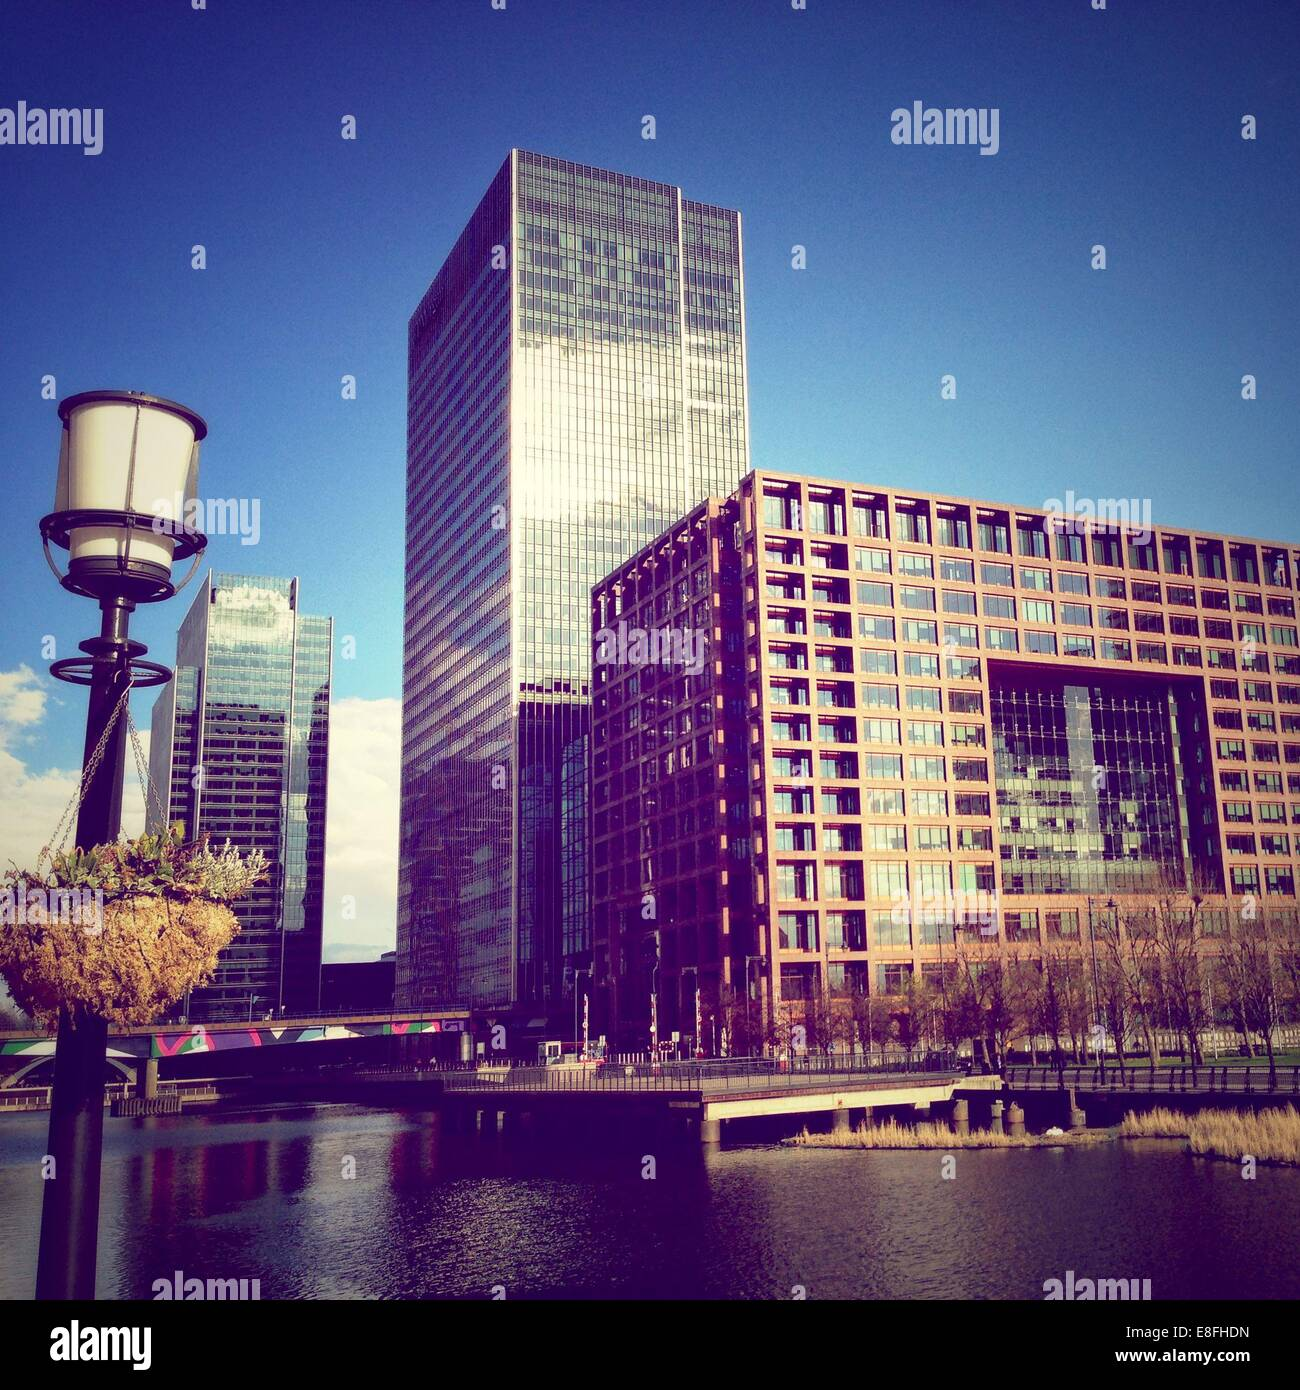 United Kingdom, London, Greater London, London Borough of Tower Hamlets, Poplar, Canada Square,   Canary Wharf - Stock Image